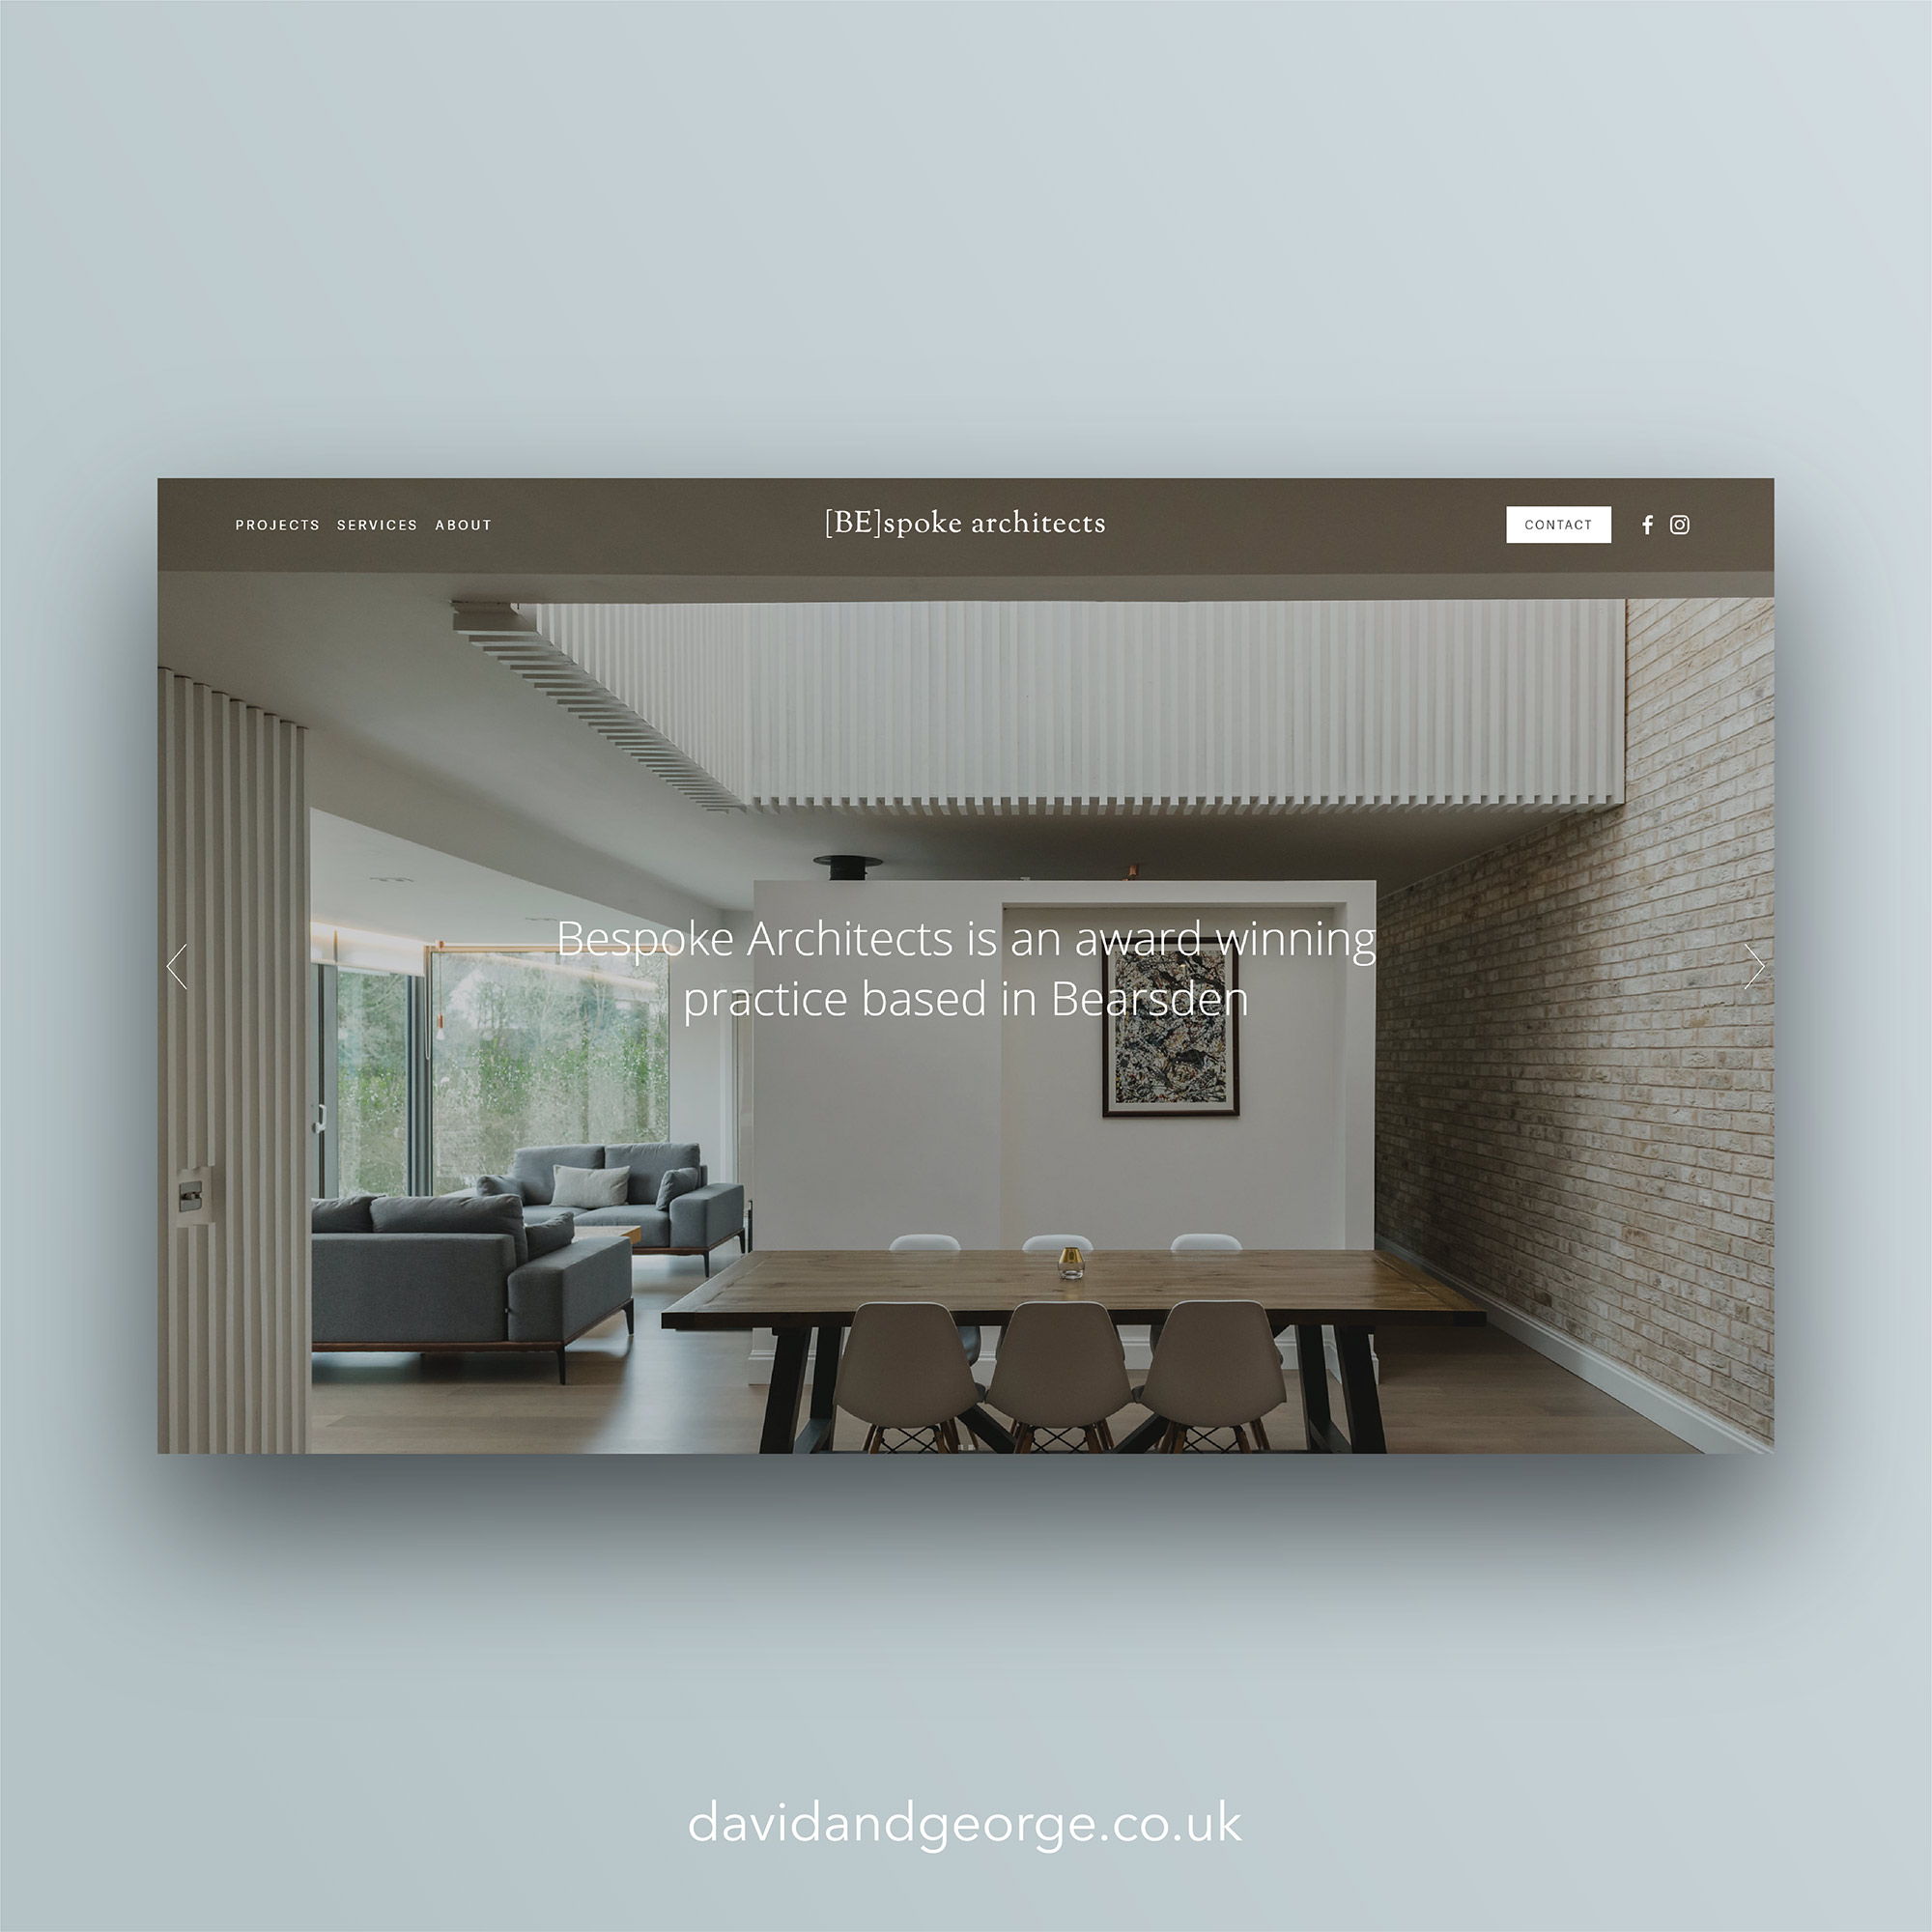 squarespace-website-design-london-edinburgh-uk-david-and-george-bespoke-architects.jpg